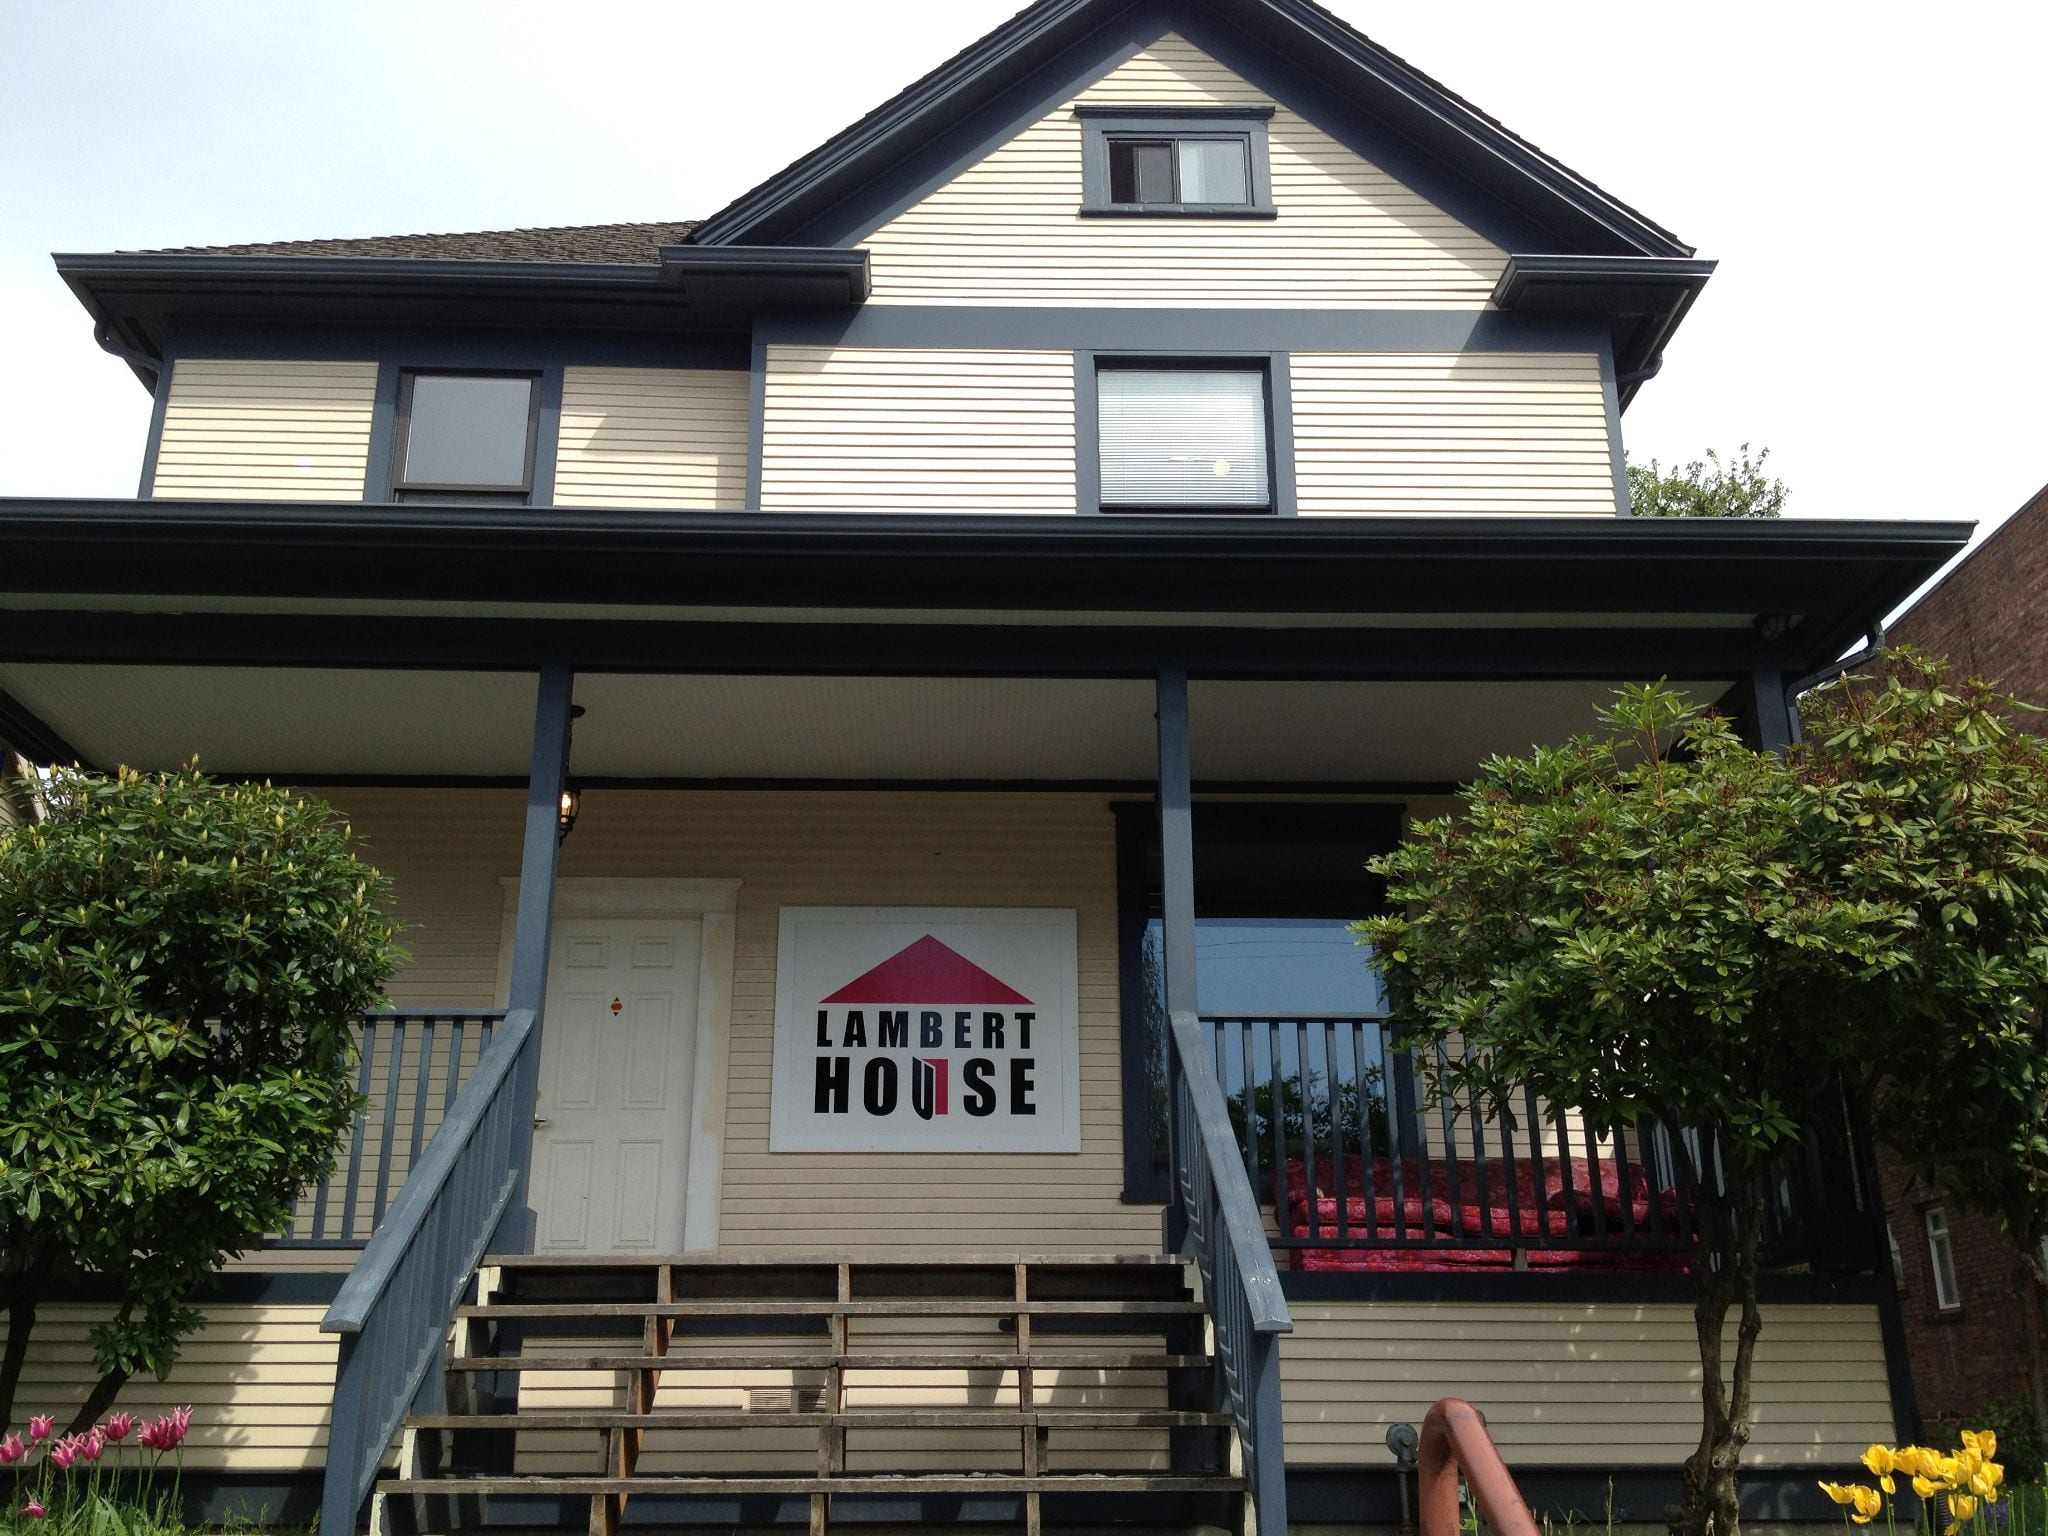 buy or move lambert house faces 2m decision on capitol hill home chs capitol hill seattle. Black Bedroom Furniture Sets. Home Design Ideas